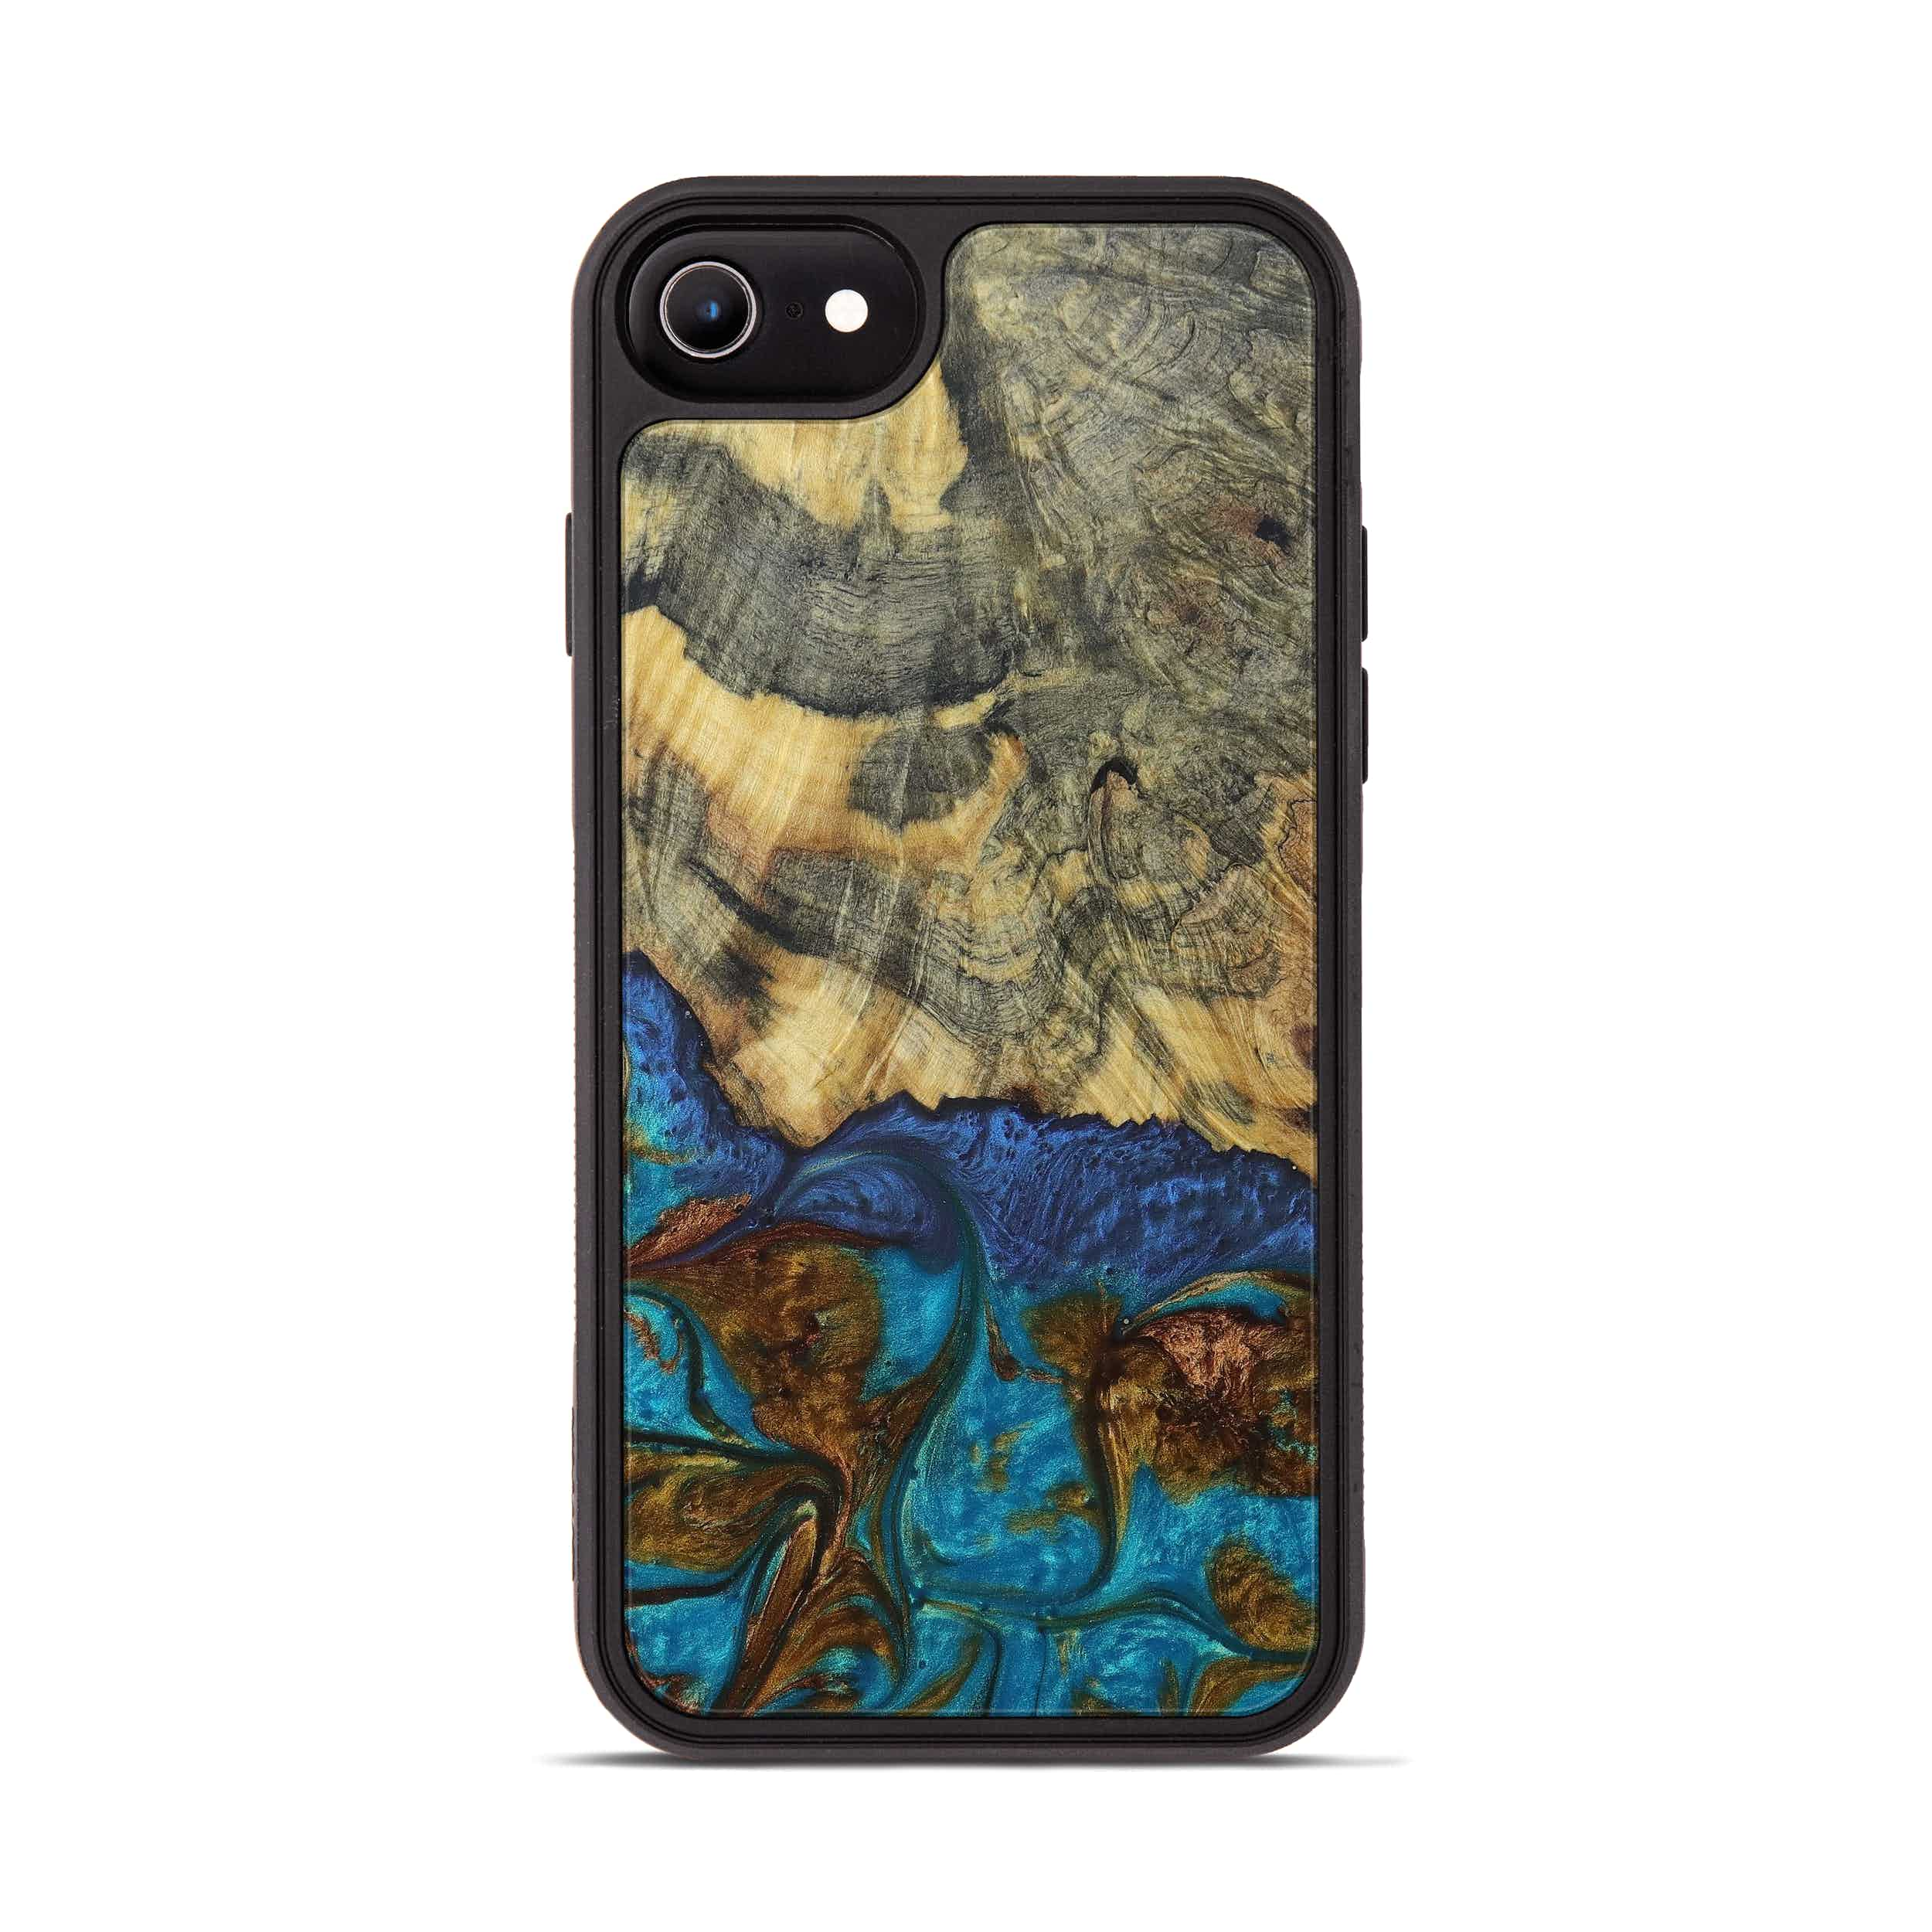 iPhone 8 Wood+Resin Phone Case - Seang (Teal & Gold, 394244)